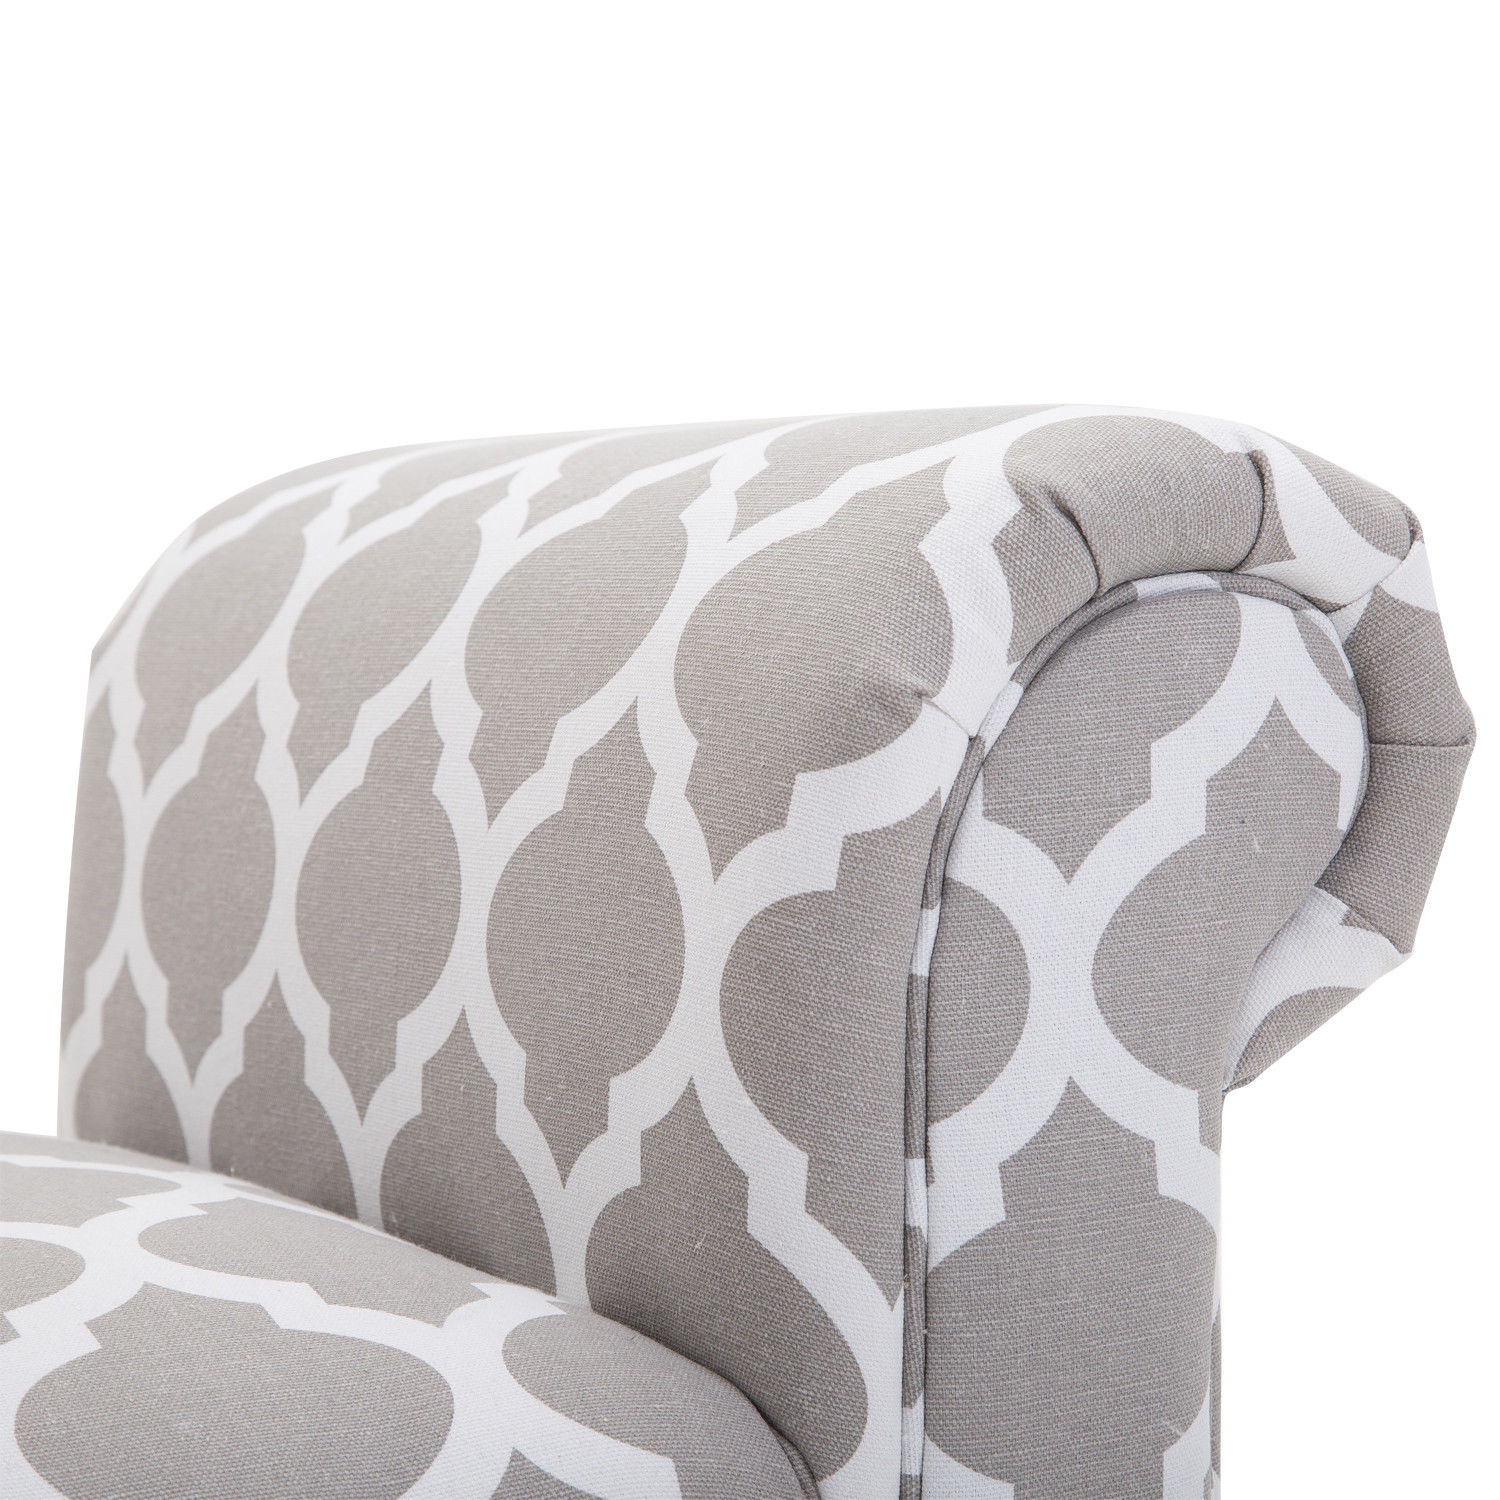 Elegant-Rolled-Arm-Bench-Bedside-End-of-Bed-Footstool-w-Arms-2-SIZE thumbnail 17